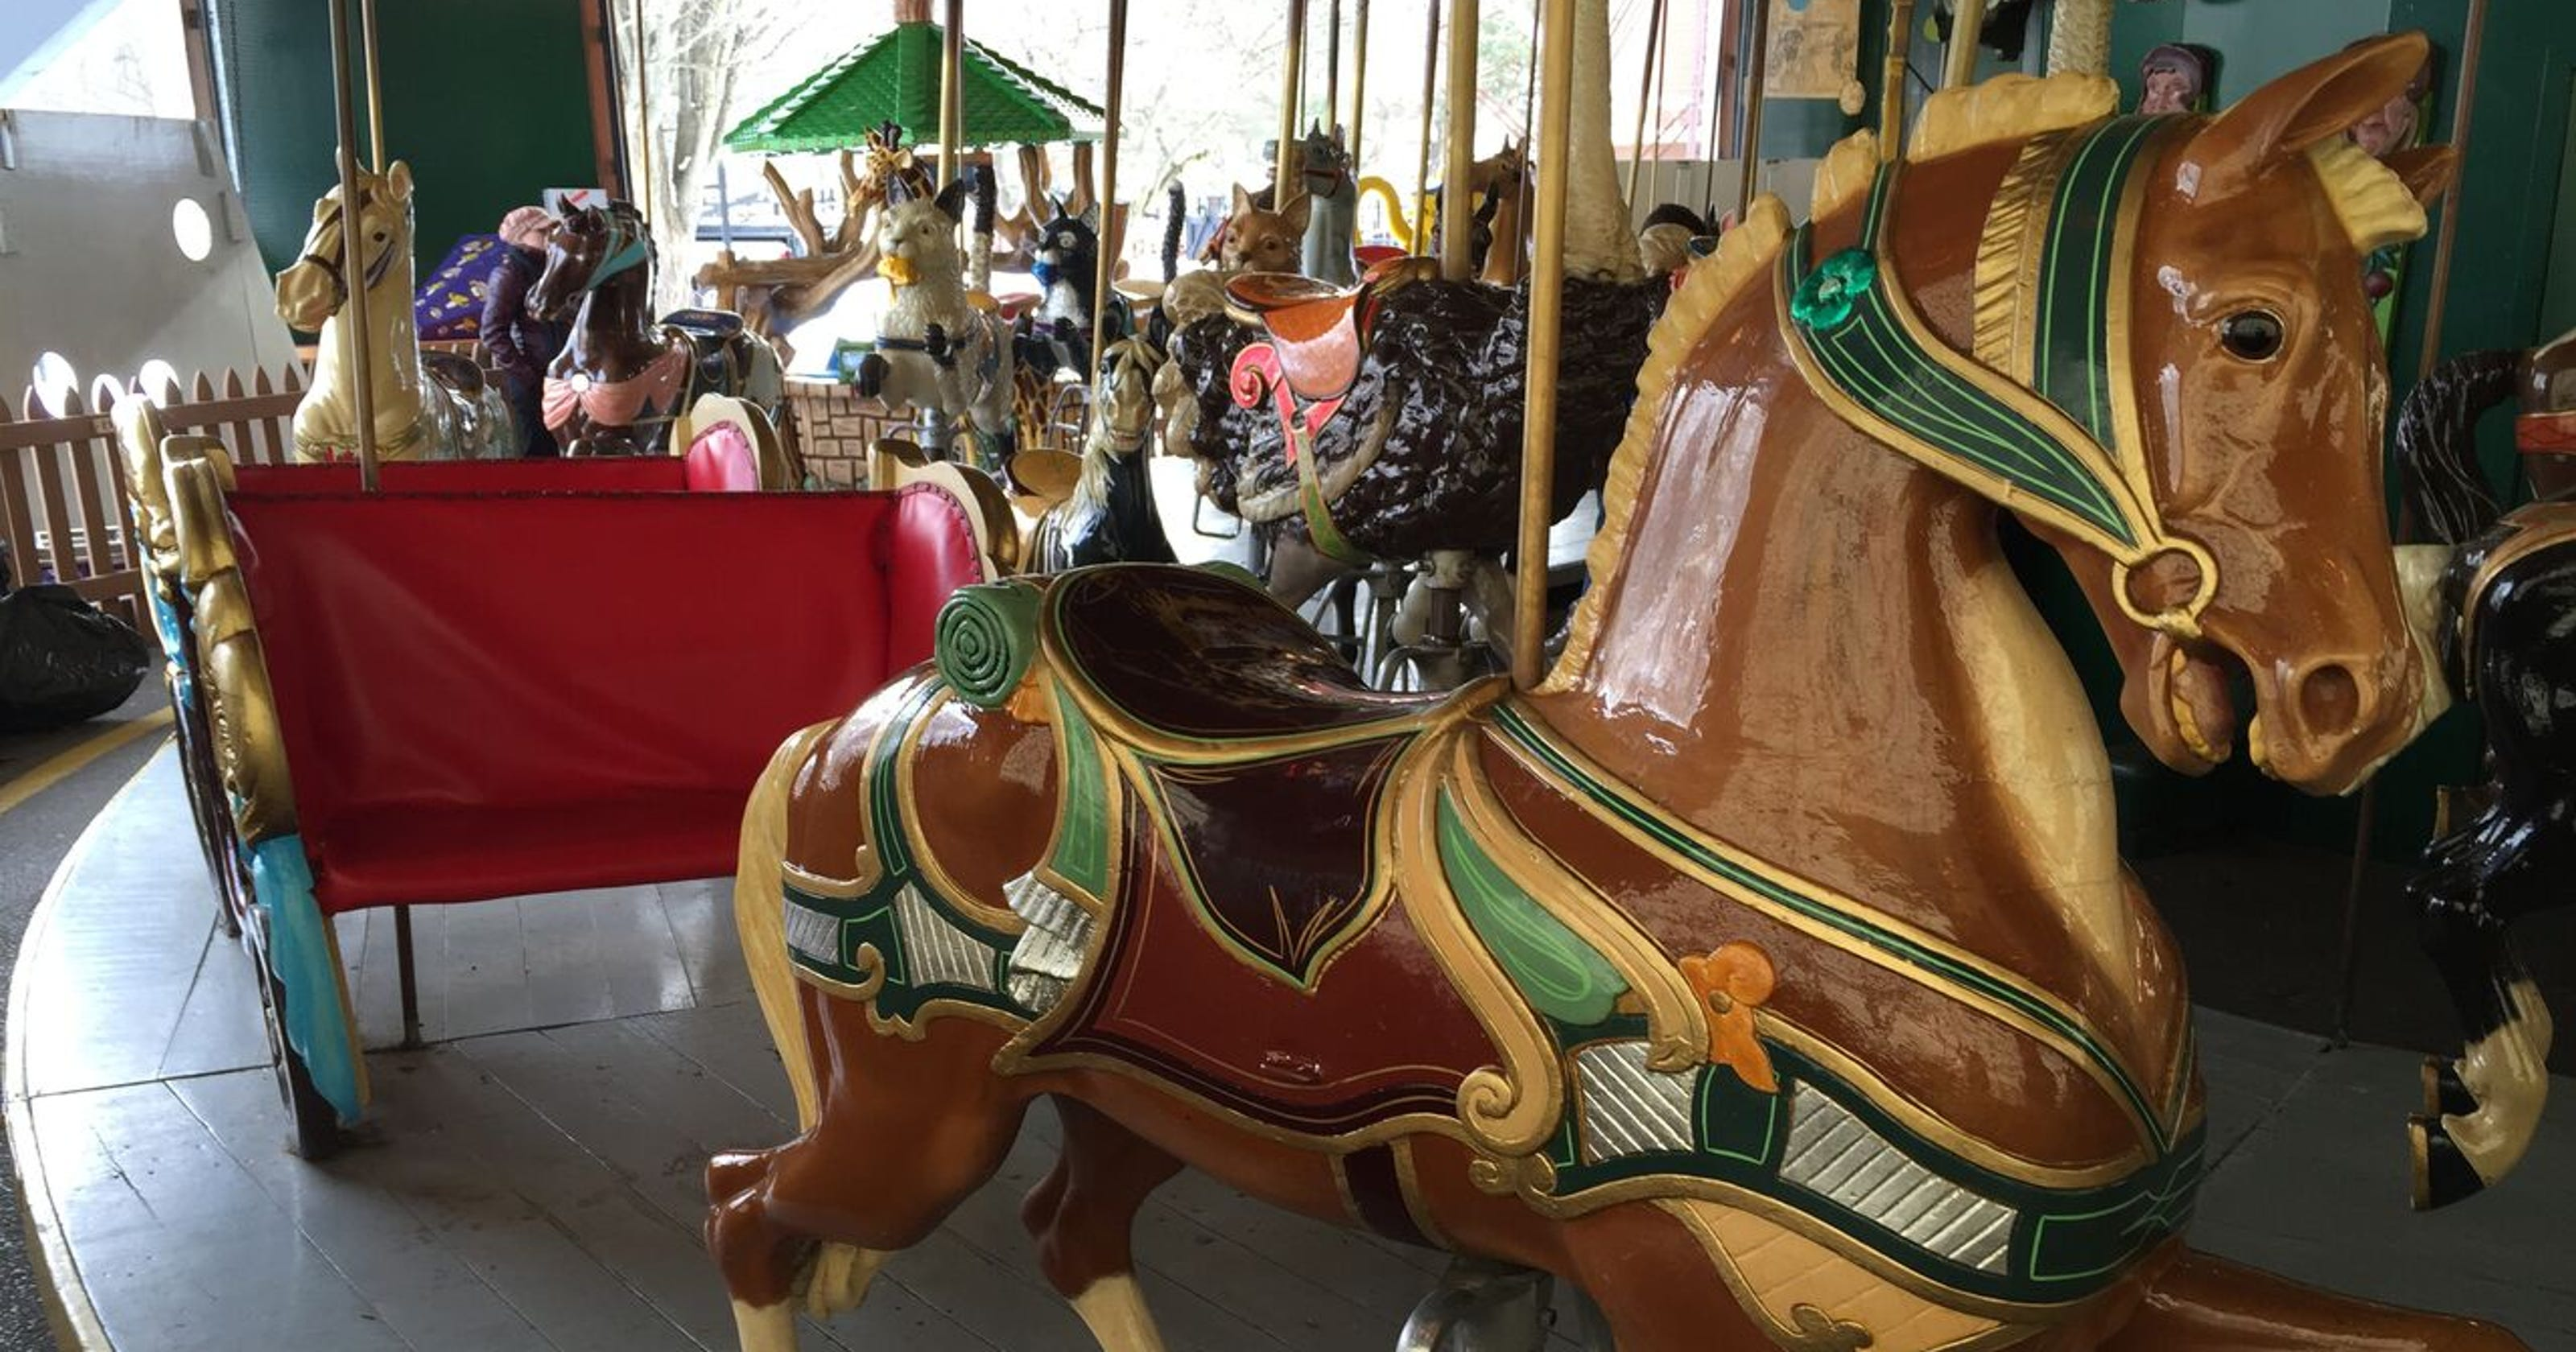 Carmel council to Brainard: Our constituents don't want to fund carousel